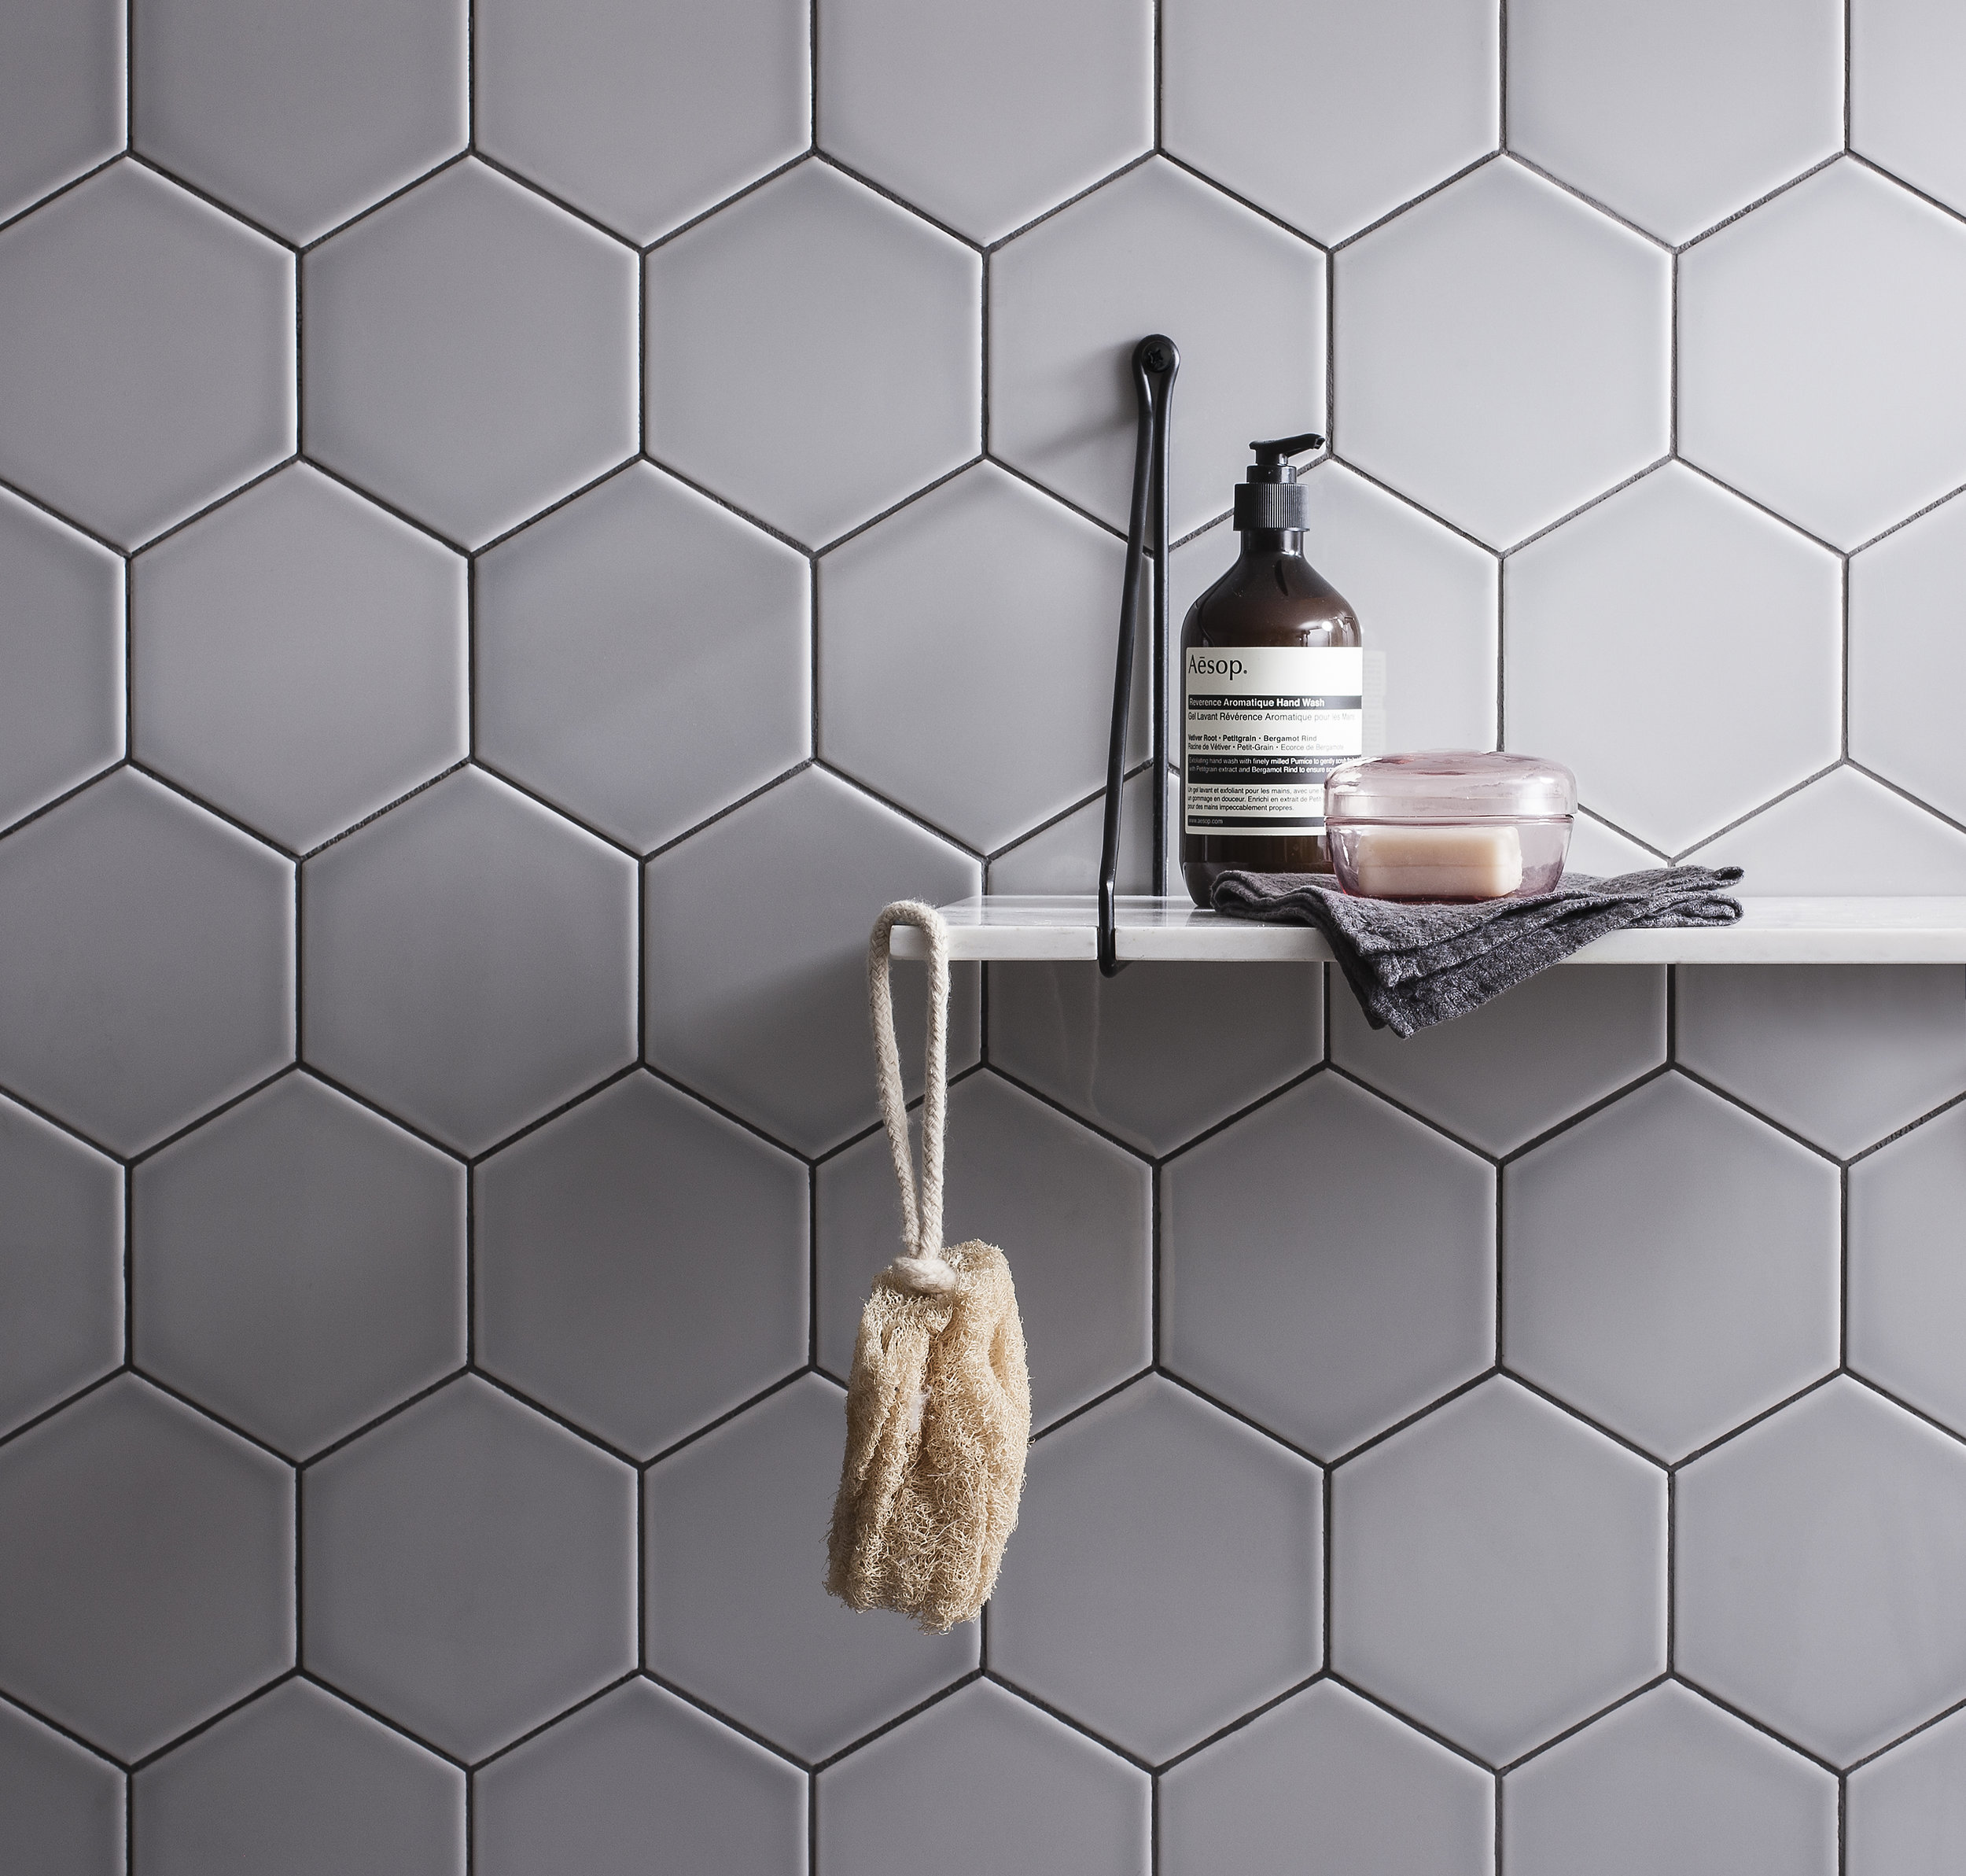 3. Hexagon tiles - Ideal for creating variable patterns, Hexagon tiles are the current bathroom must-have! Shape things up with these Savoy Hexagon tiles from Gemini.